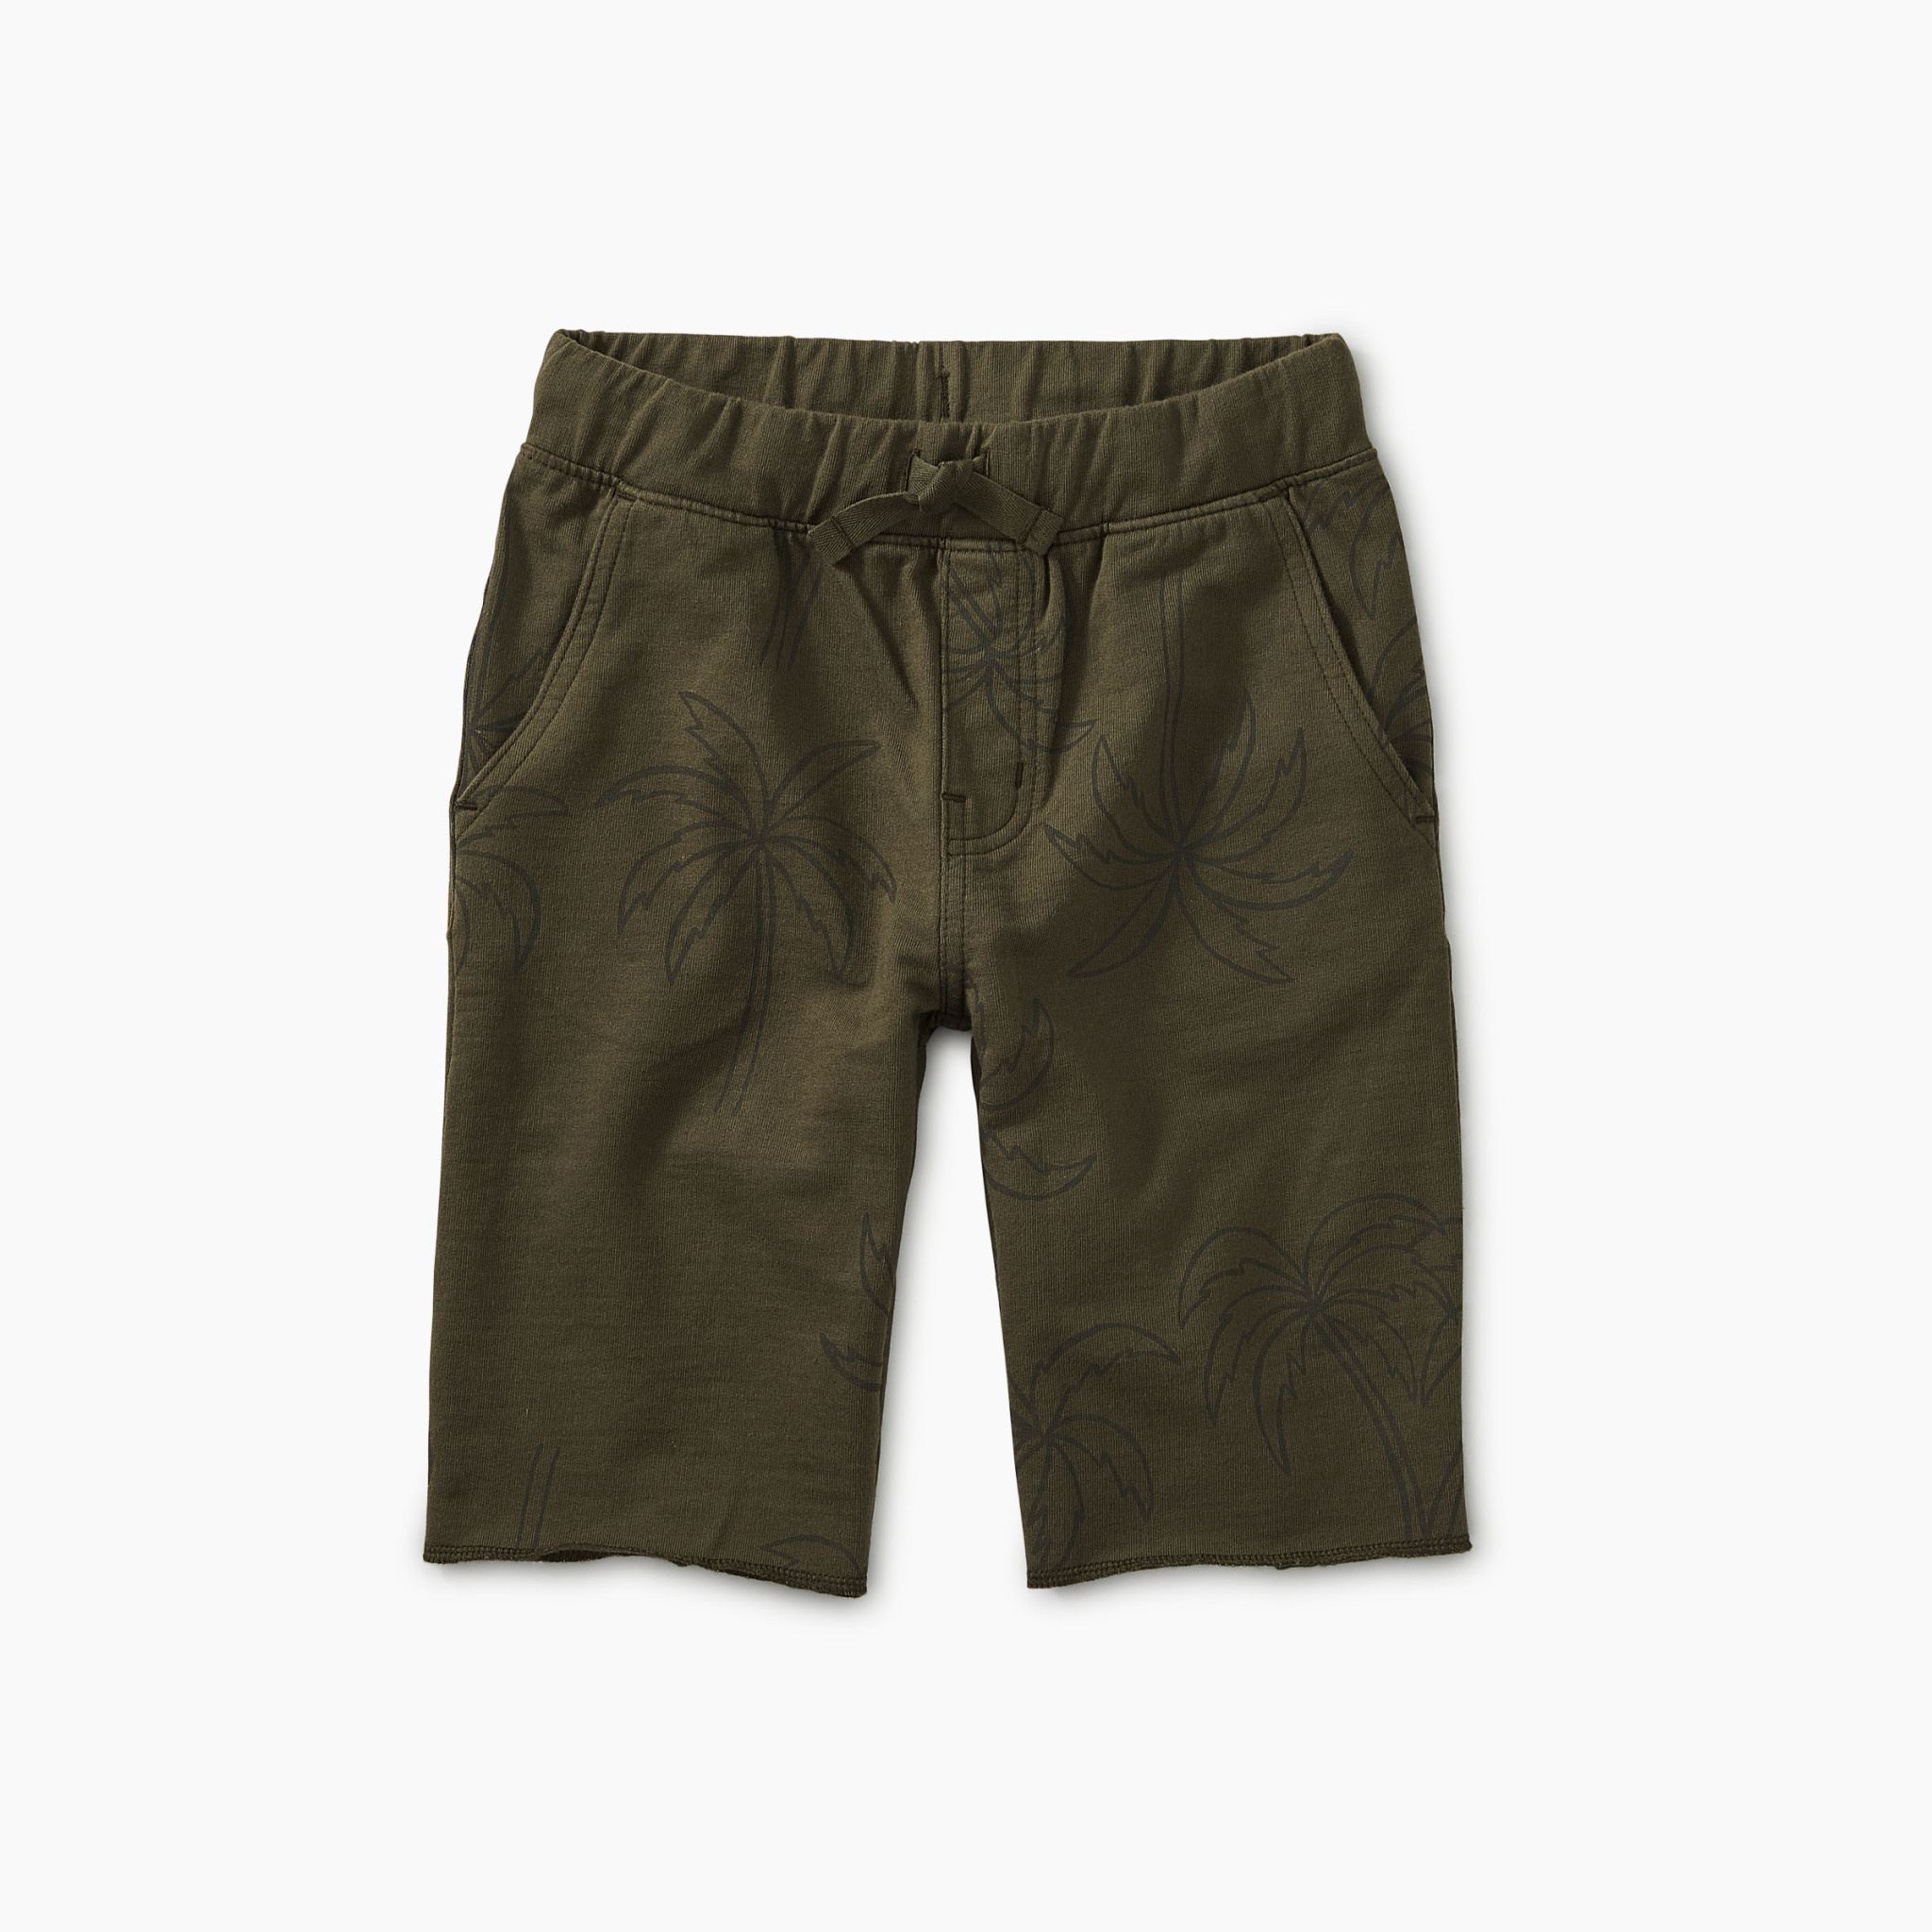 Tea Collection Balmy Palms Shorts